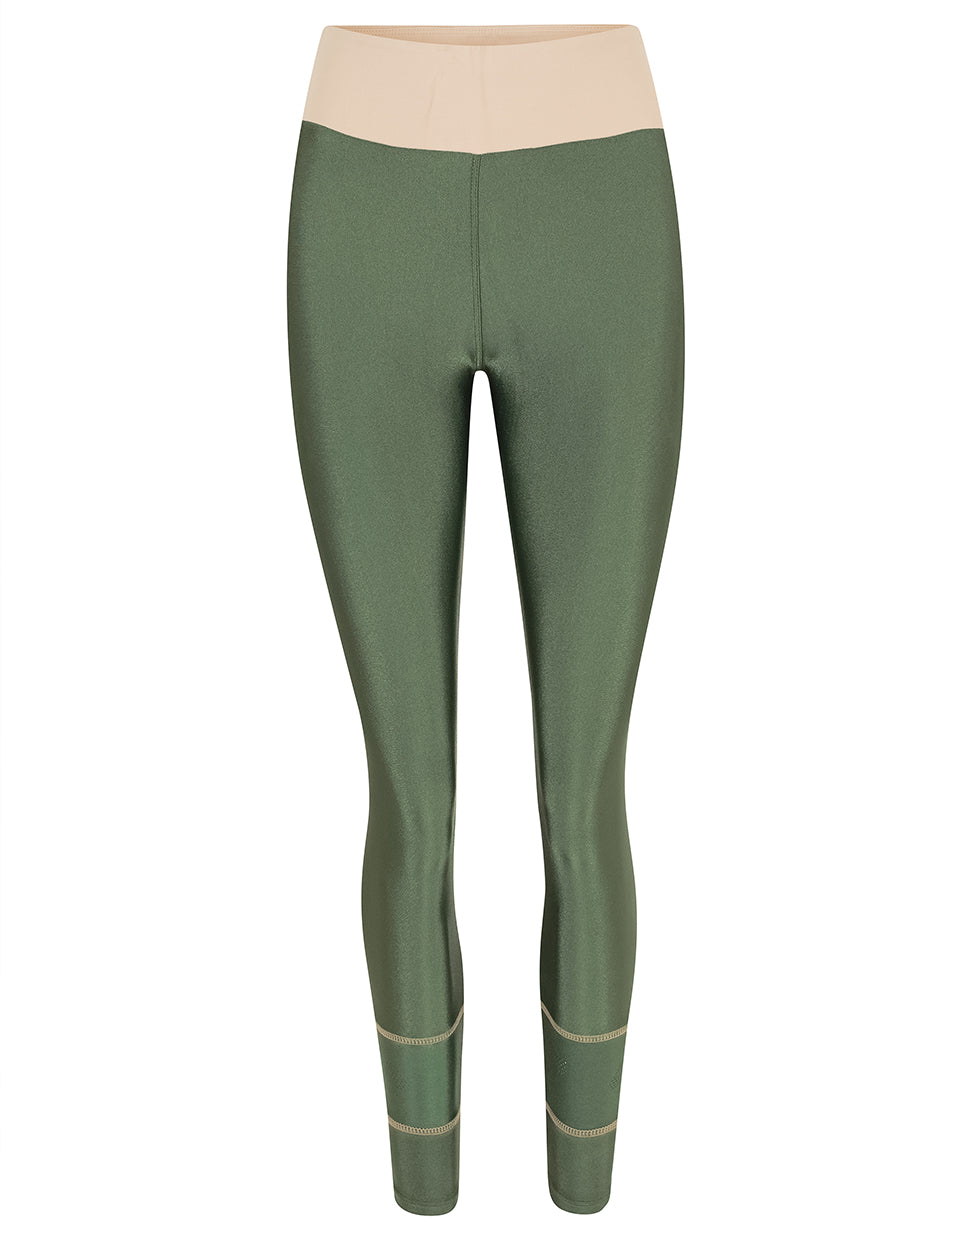 Legging Naipes Verde